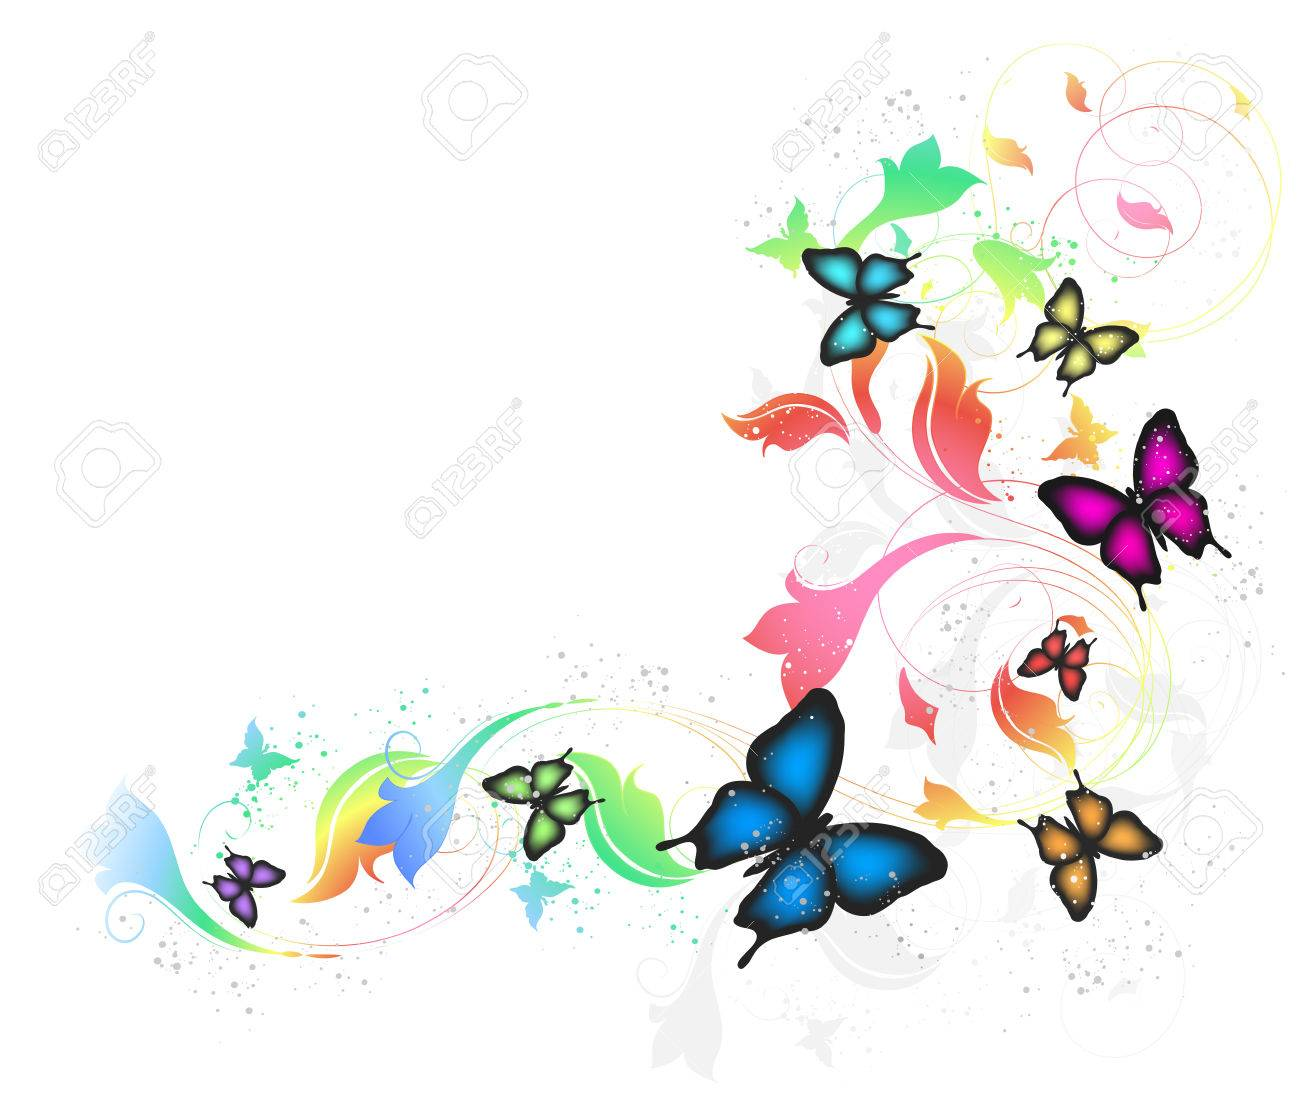 Gray Background With Butterflies And Floral Ornate - 26592698